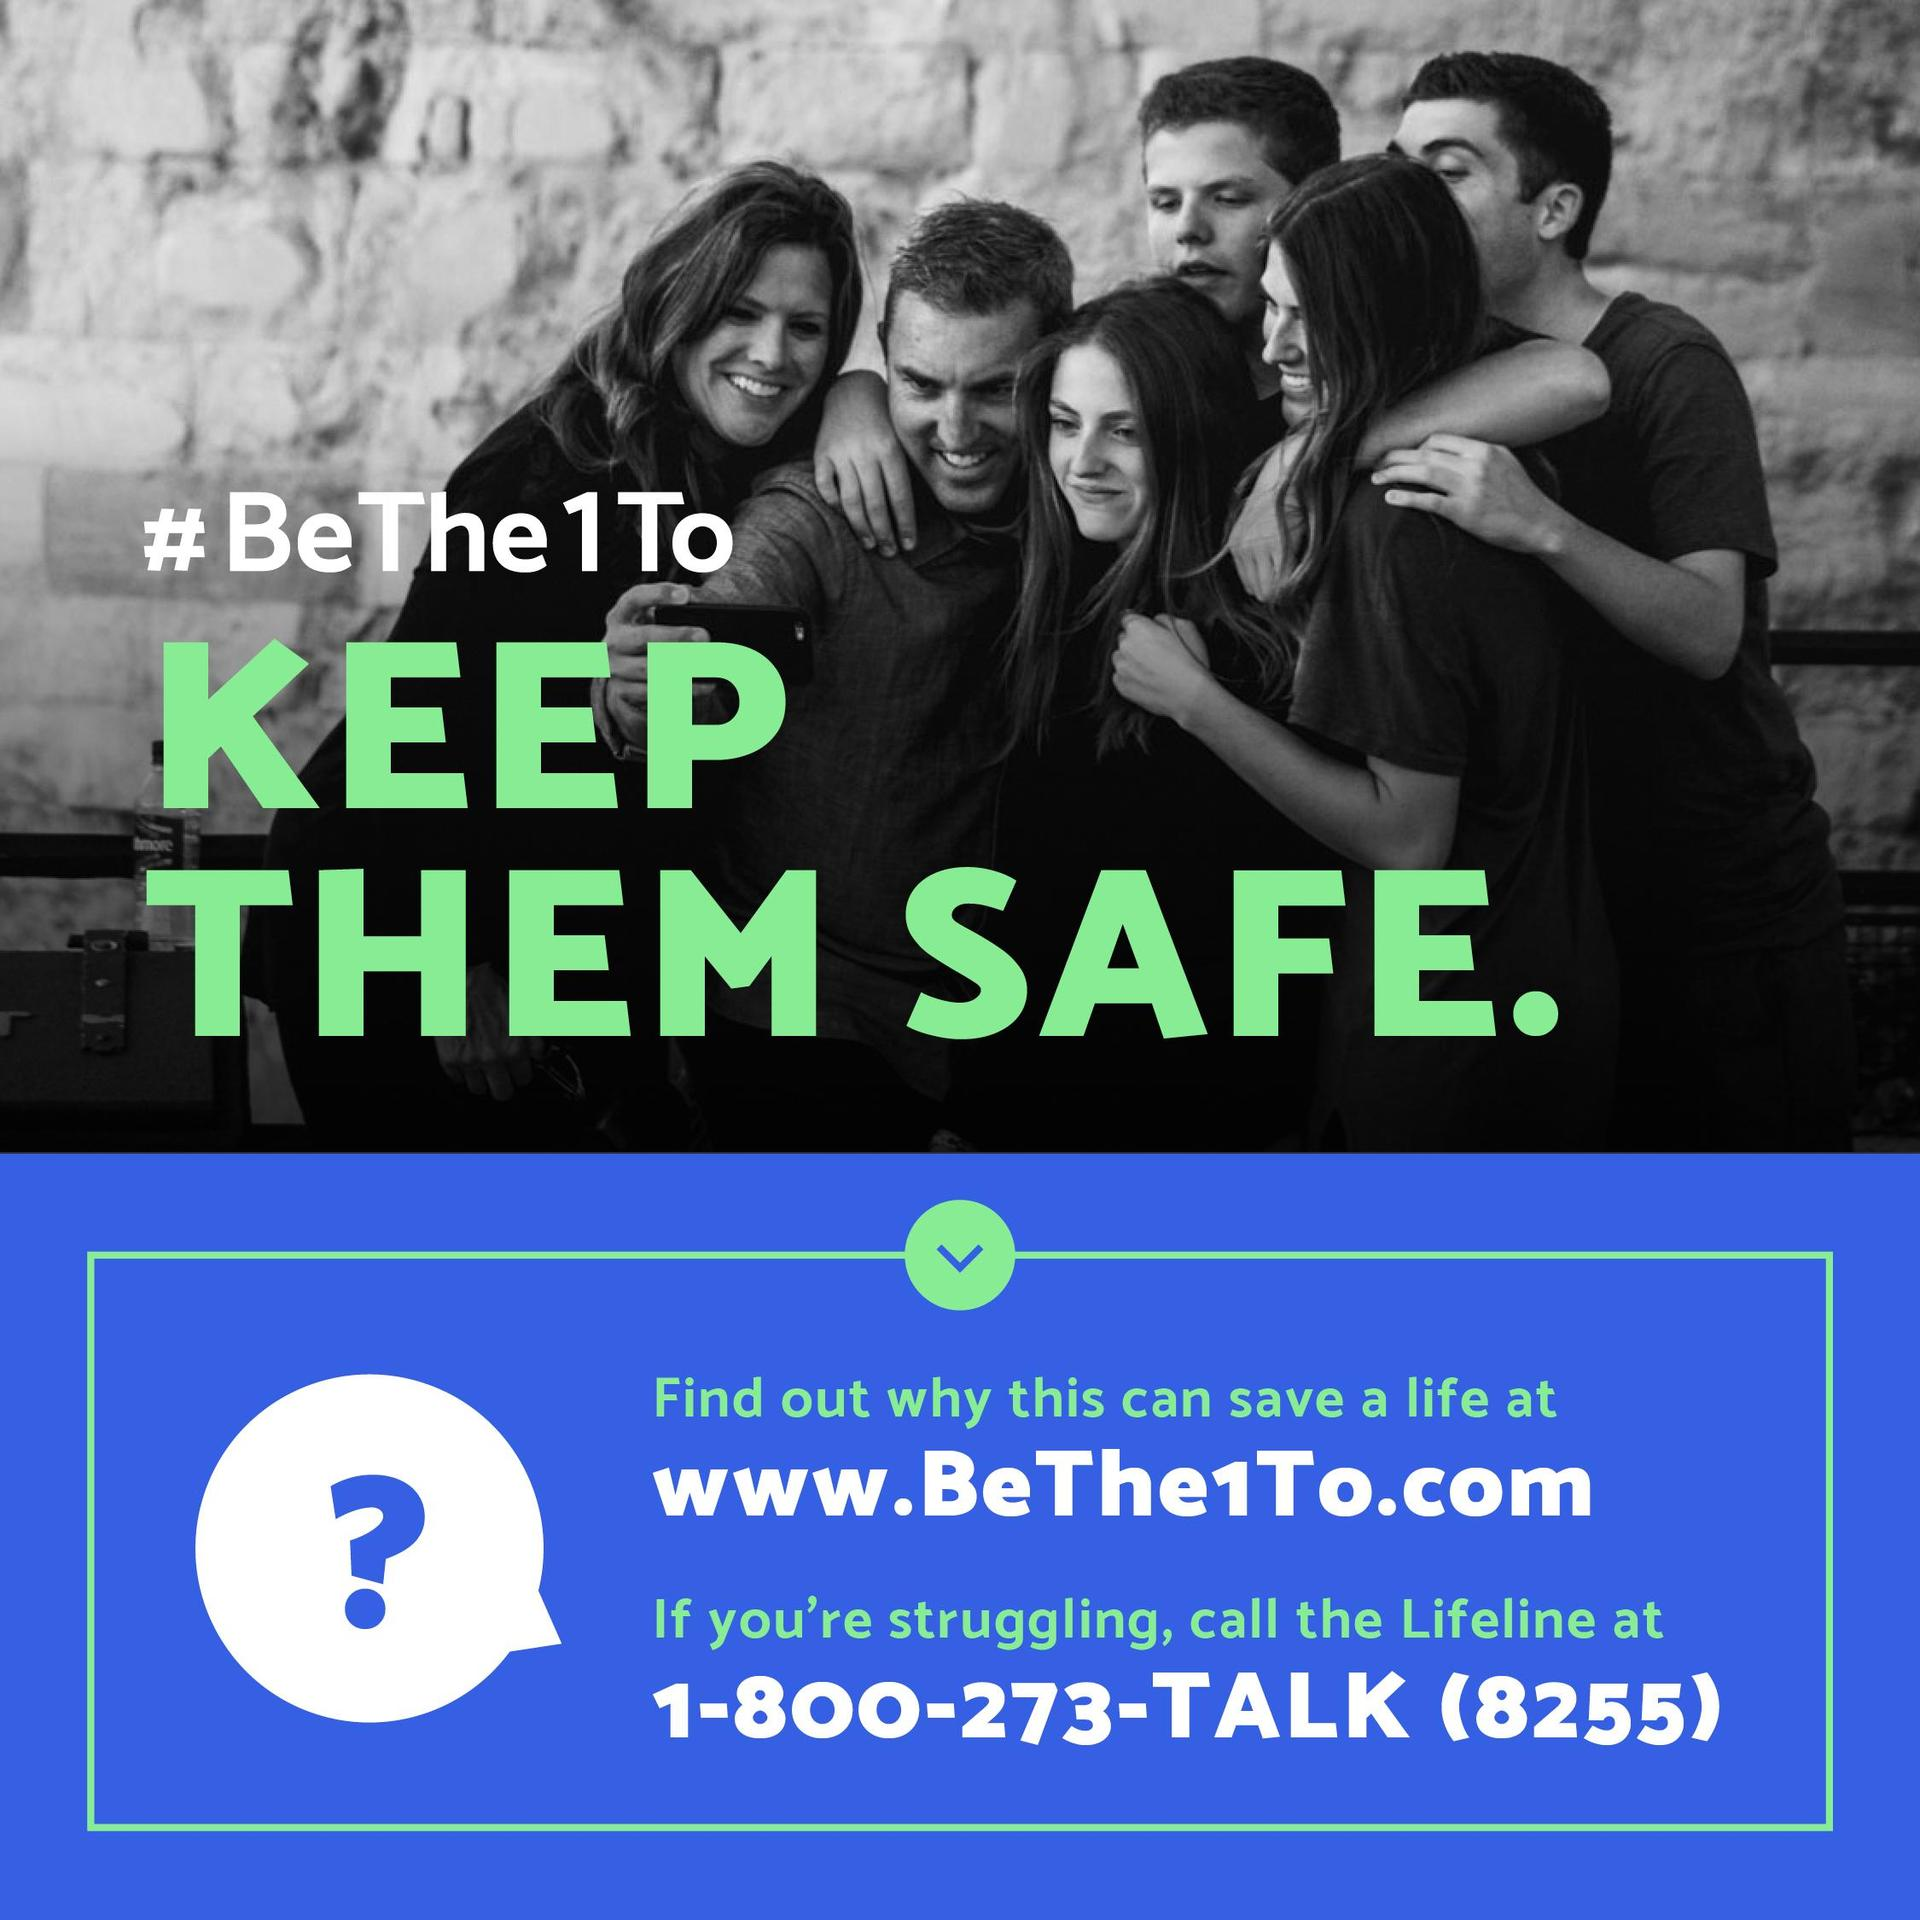 Be the one to Keep them safe